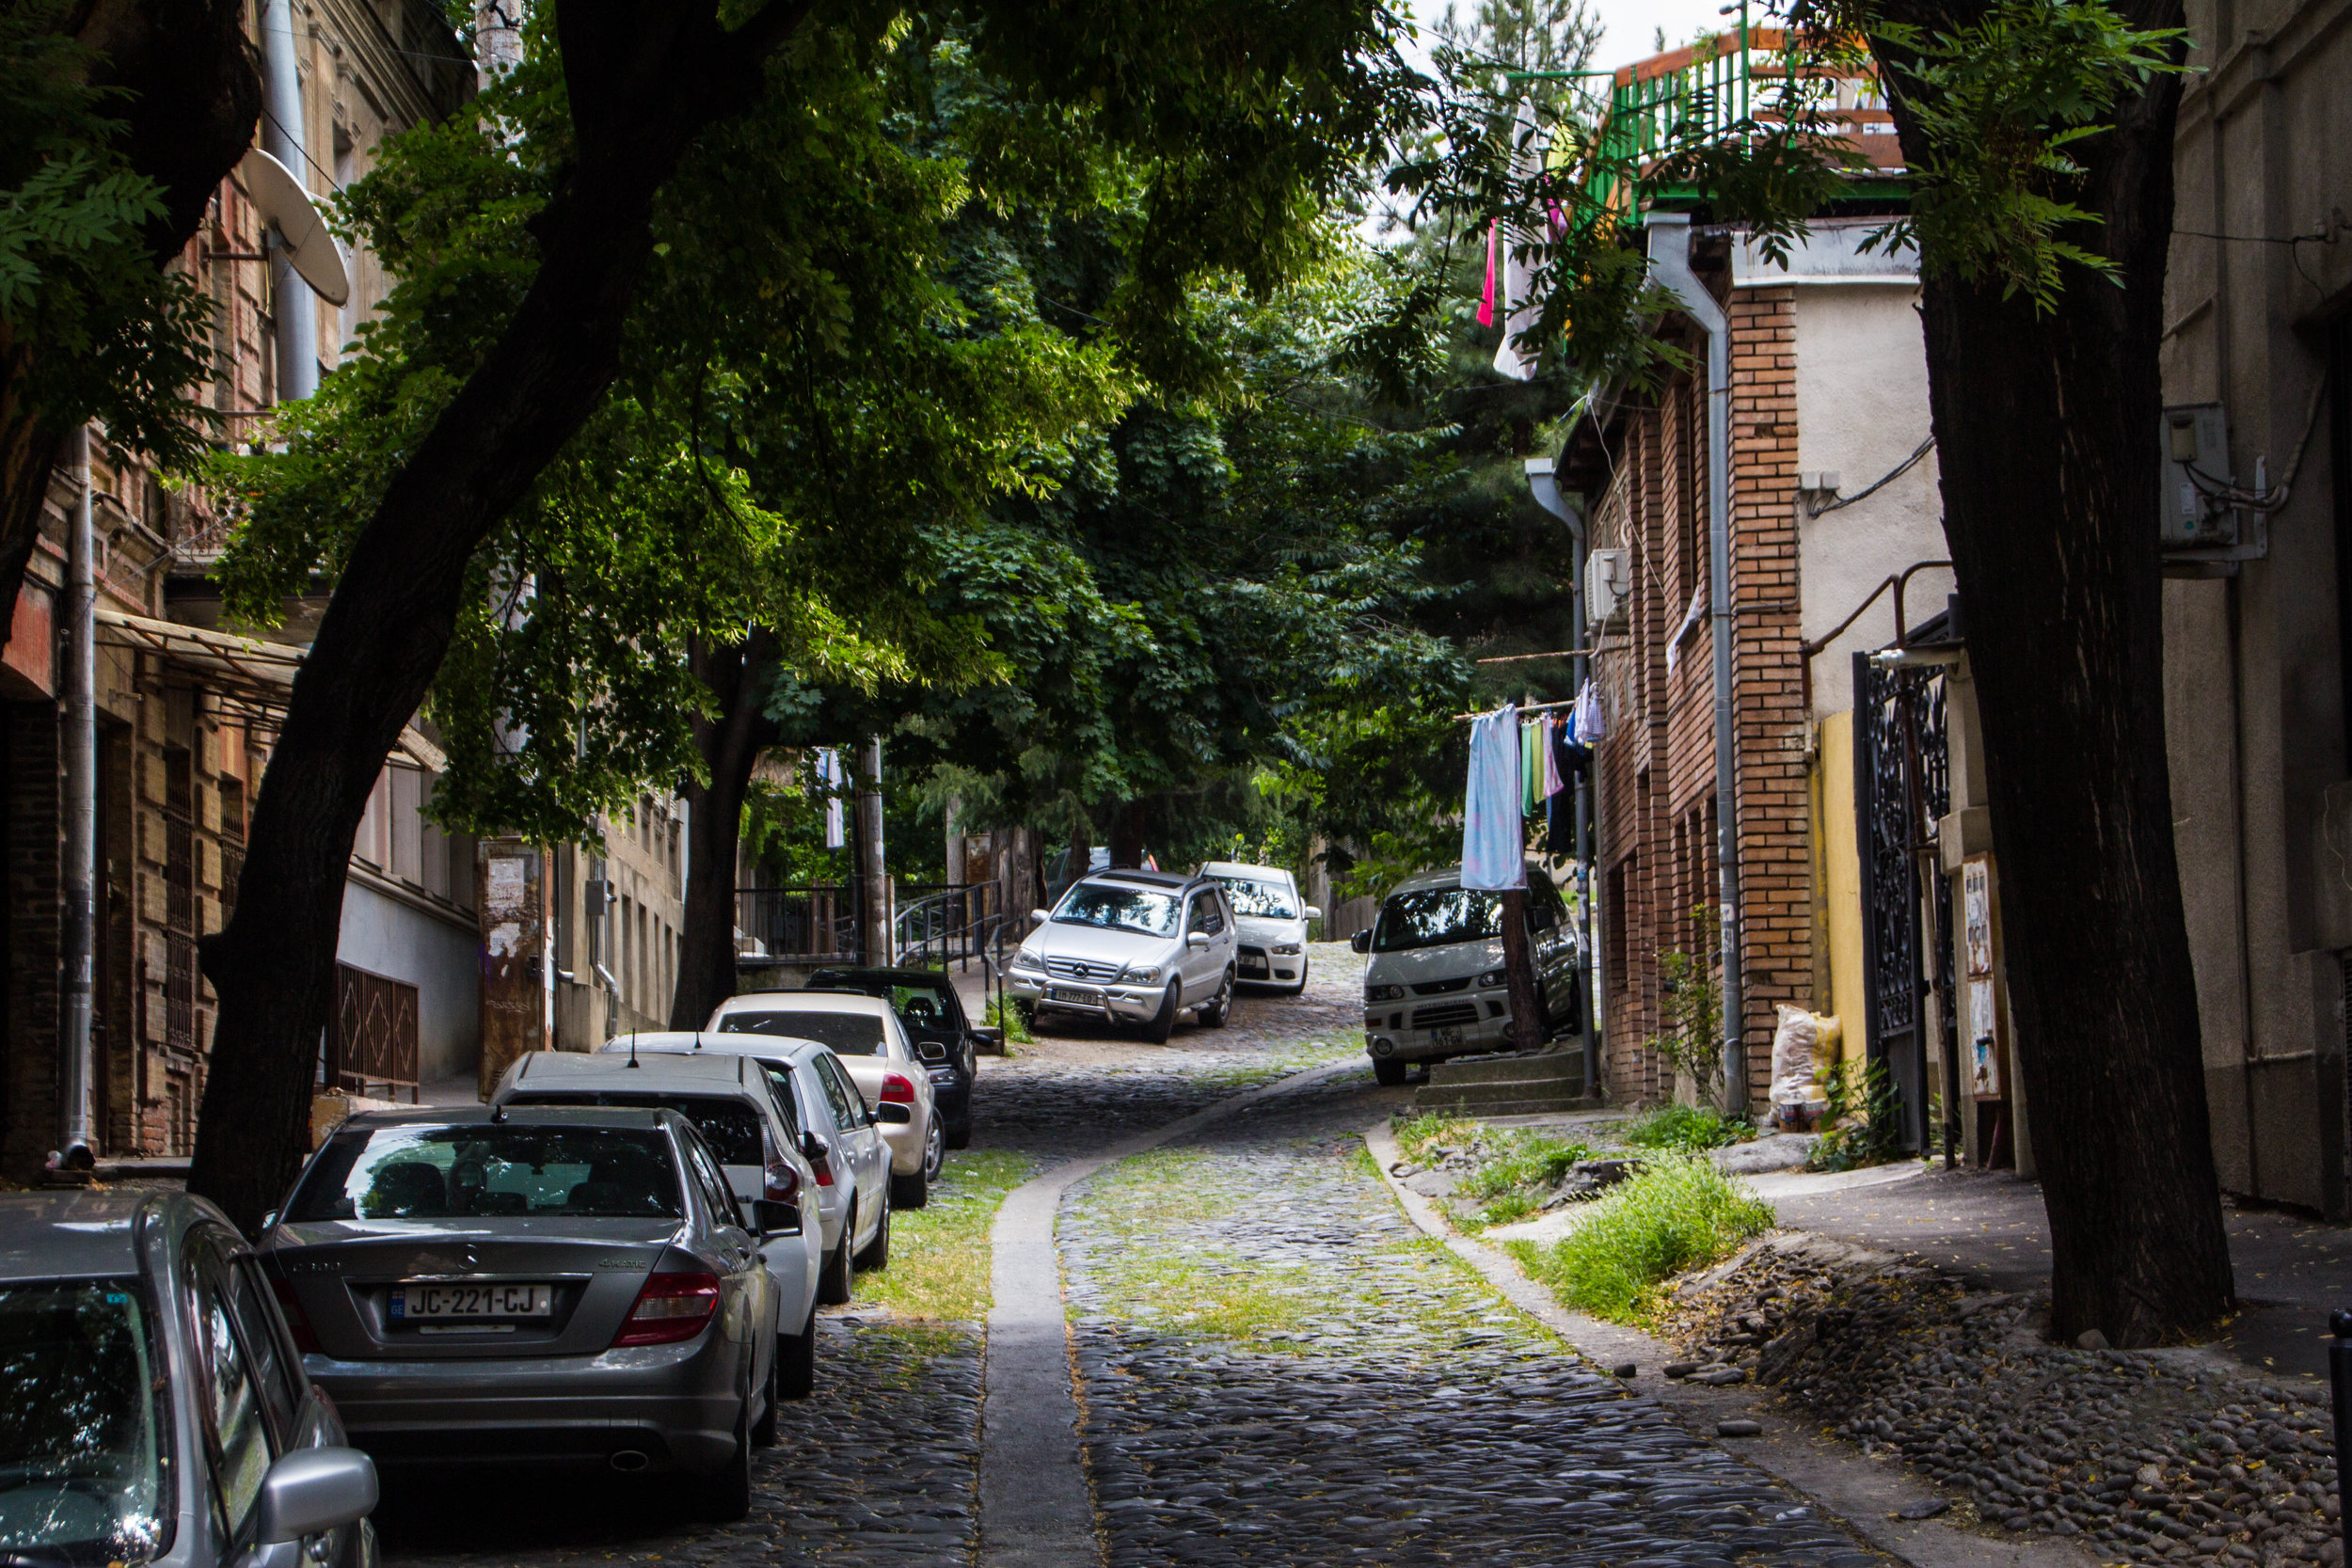 streets-of-tbilisi-georgia-100.jpg